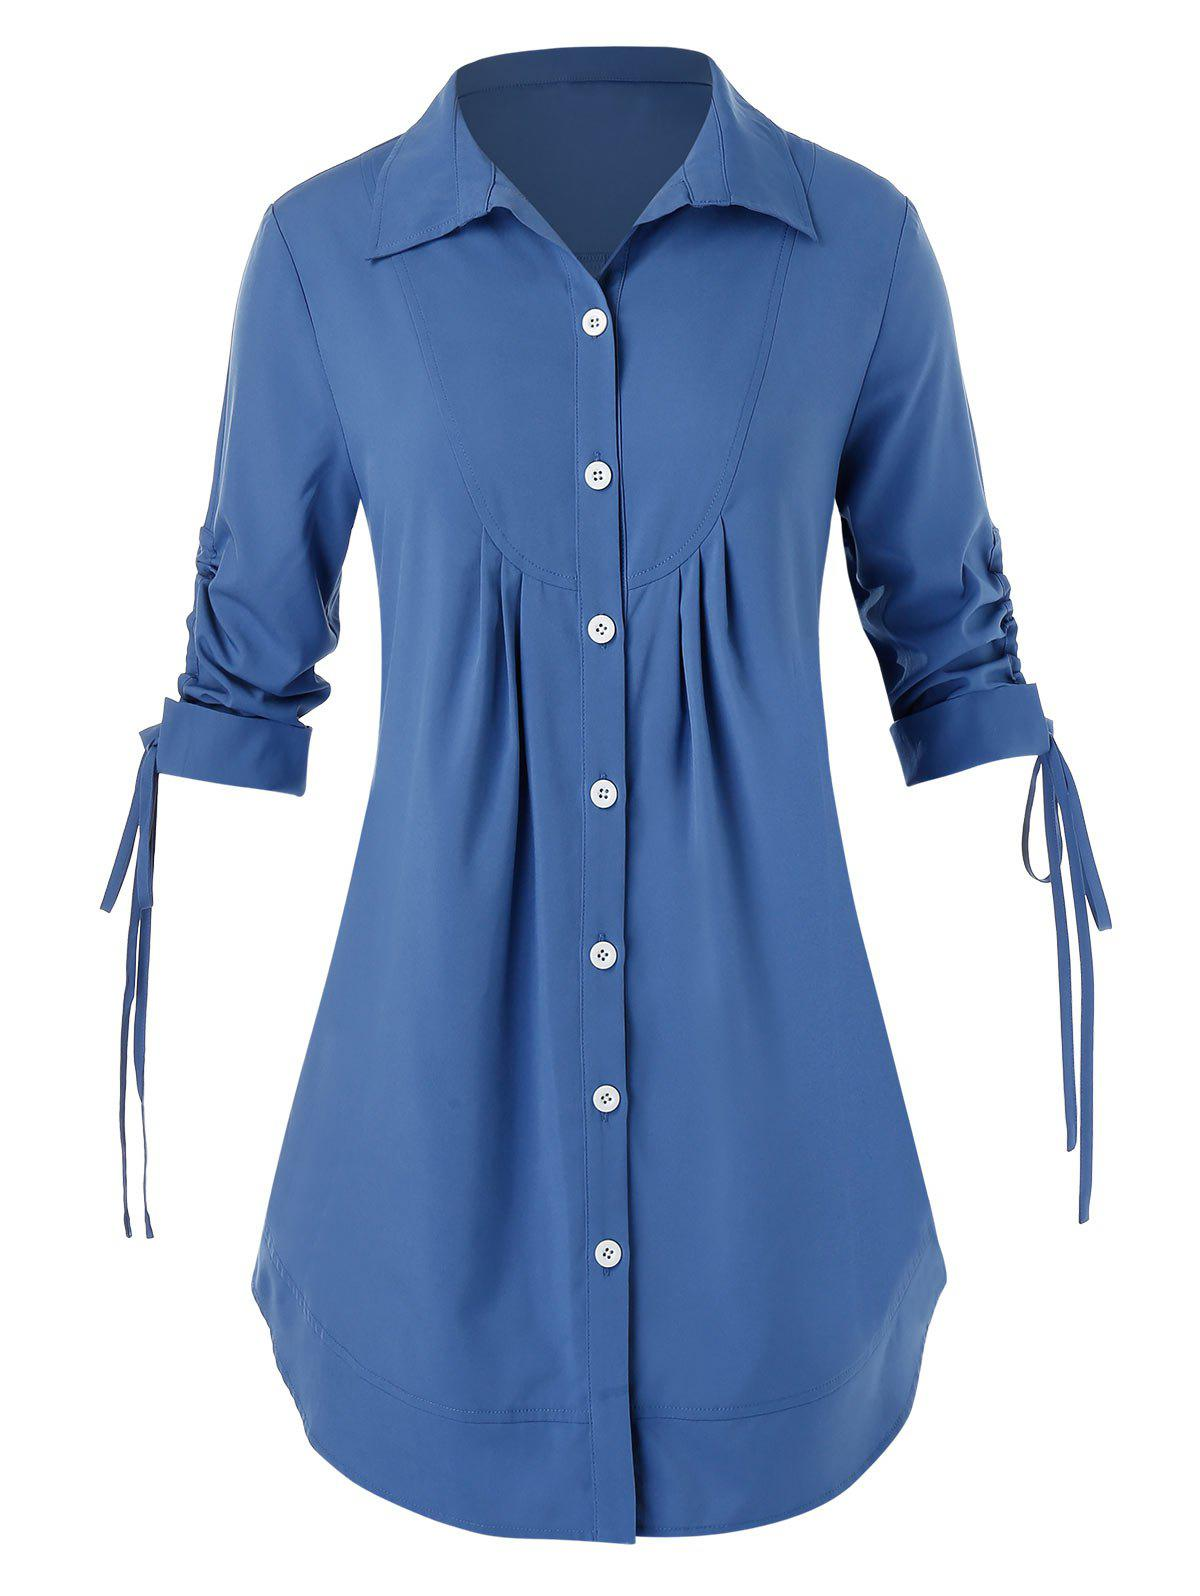 Plus Size Button Up Lace-Up Shirt - SILK BLUE 4X